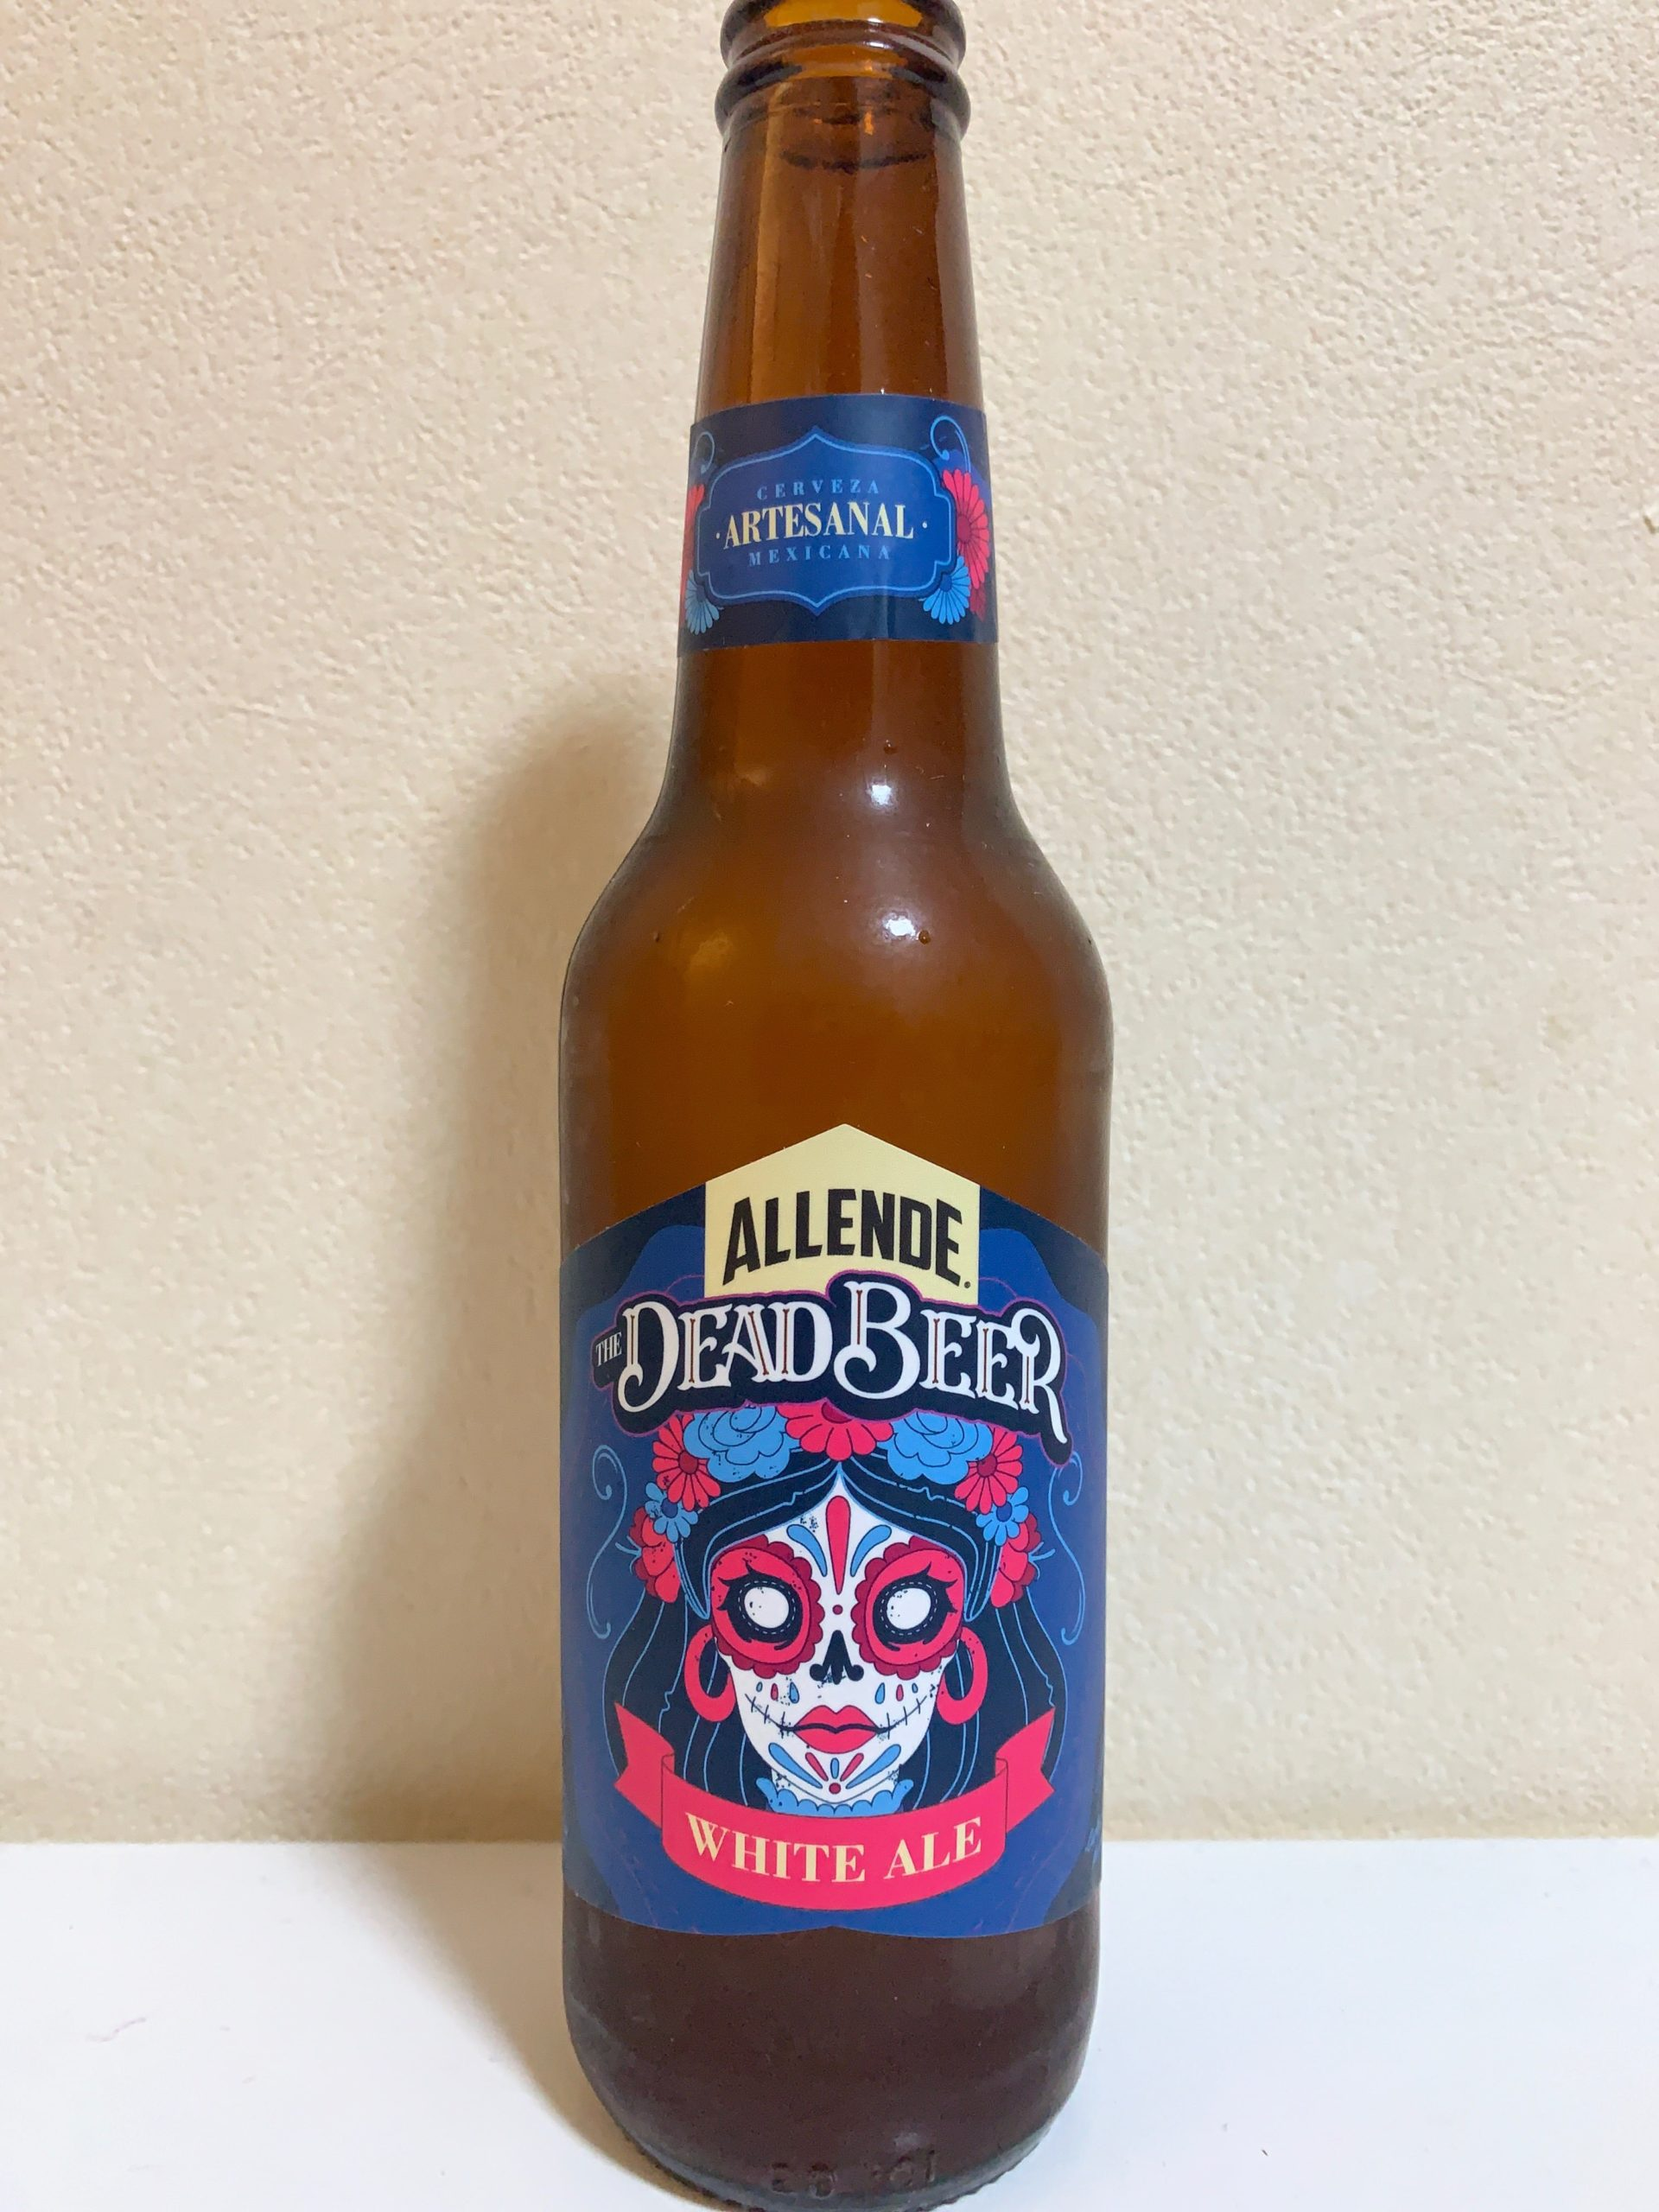 ALLENDE THE DEAD BEER WHITE ALE(アジェンデ ザ デッドビール ホワイトエール)